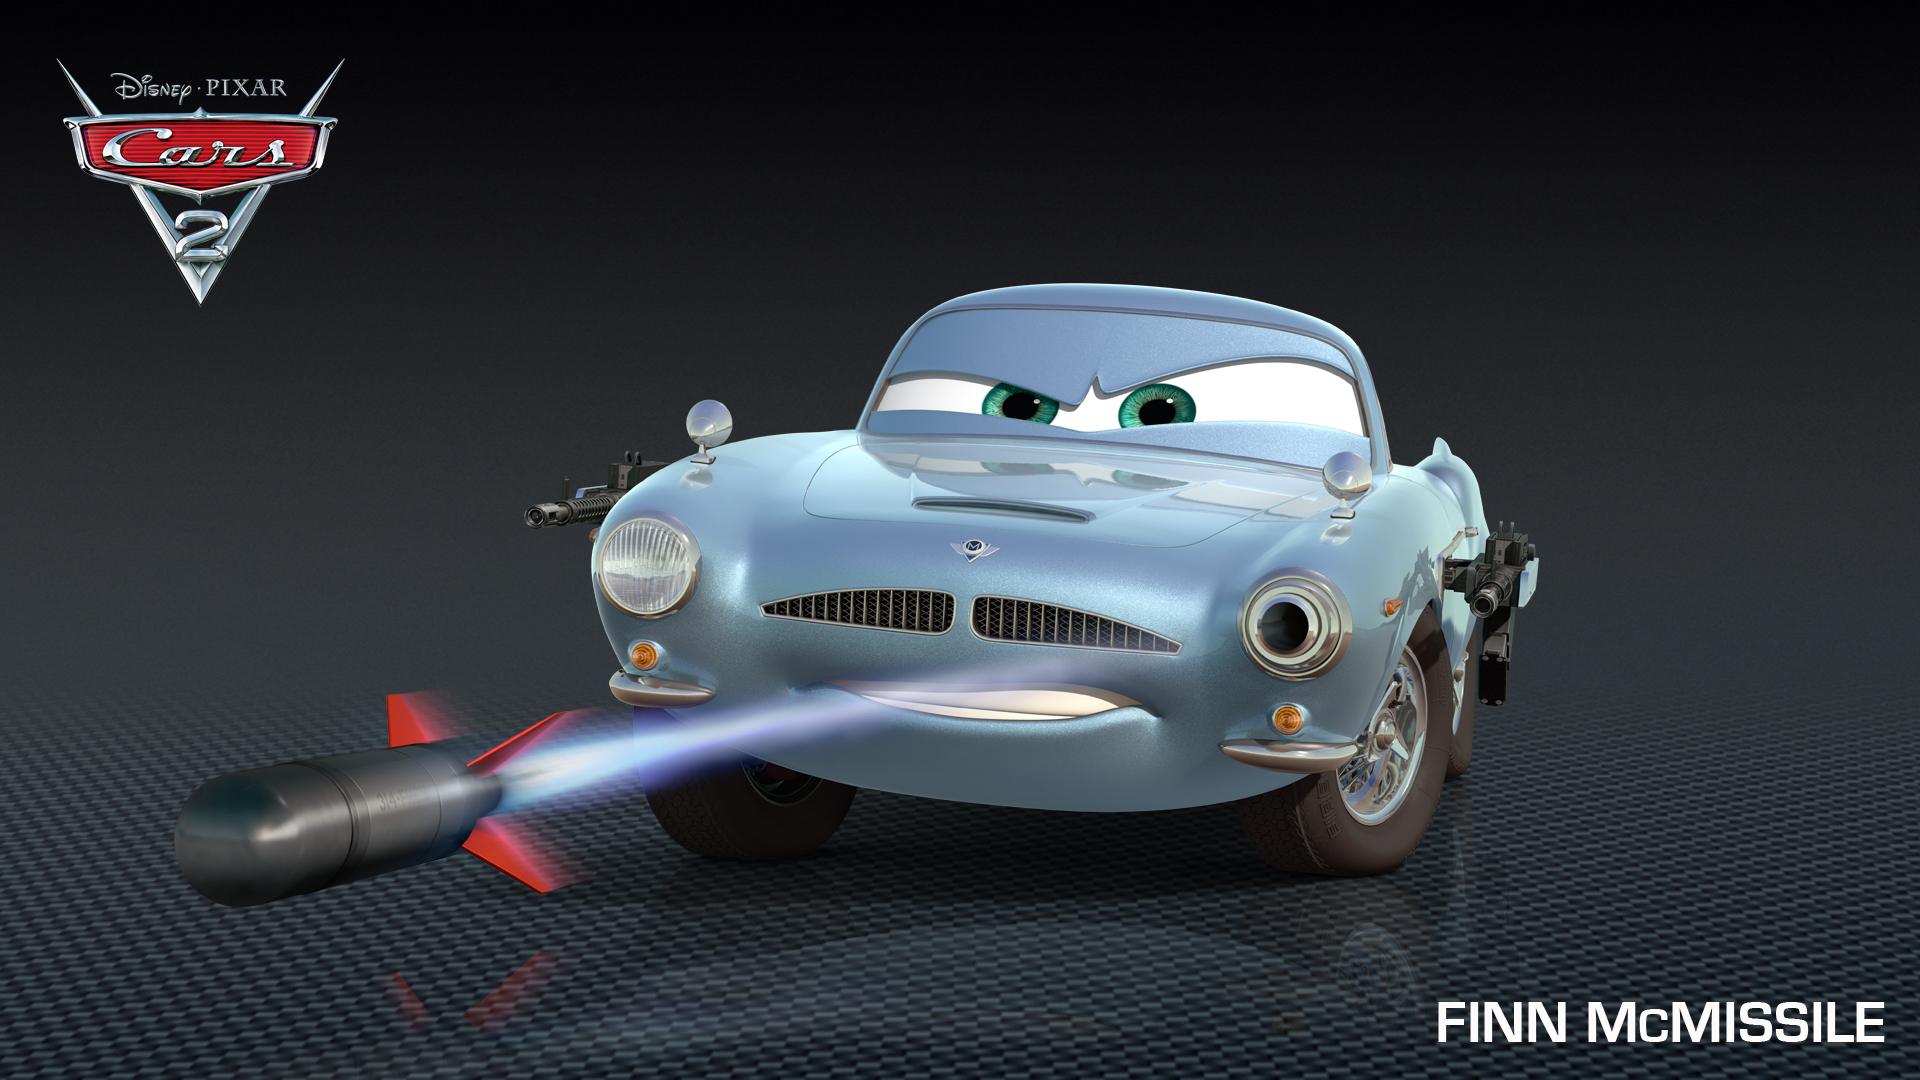 New Cars 2 Characters Get Some Images & Descriptions